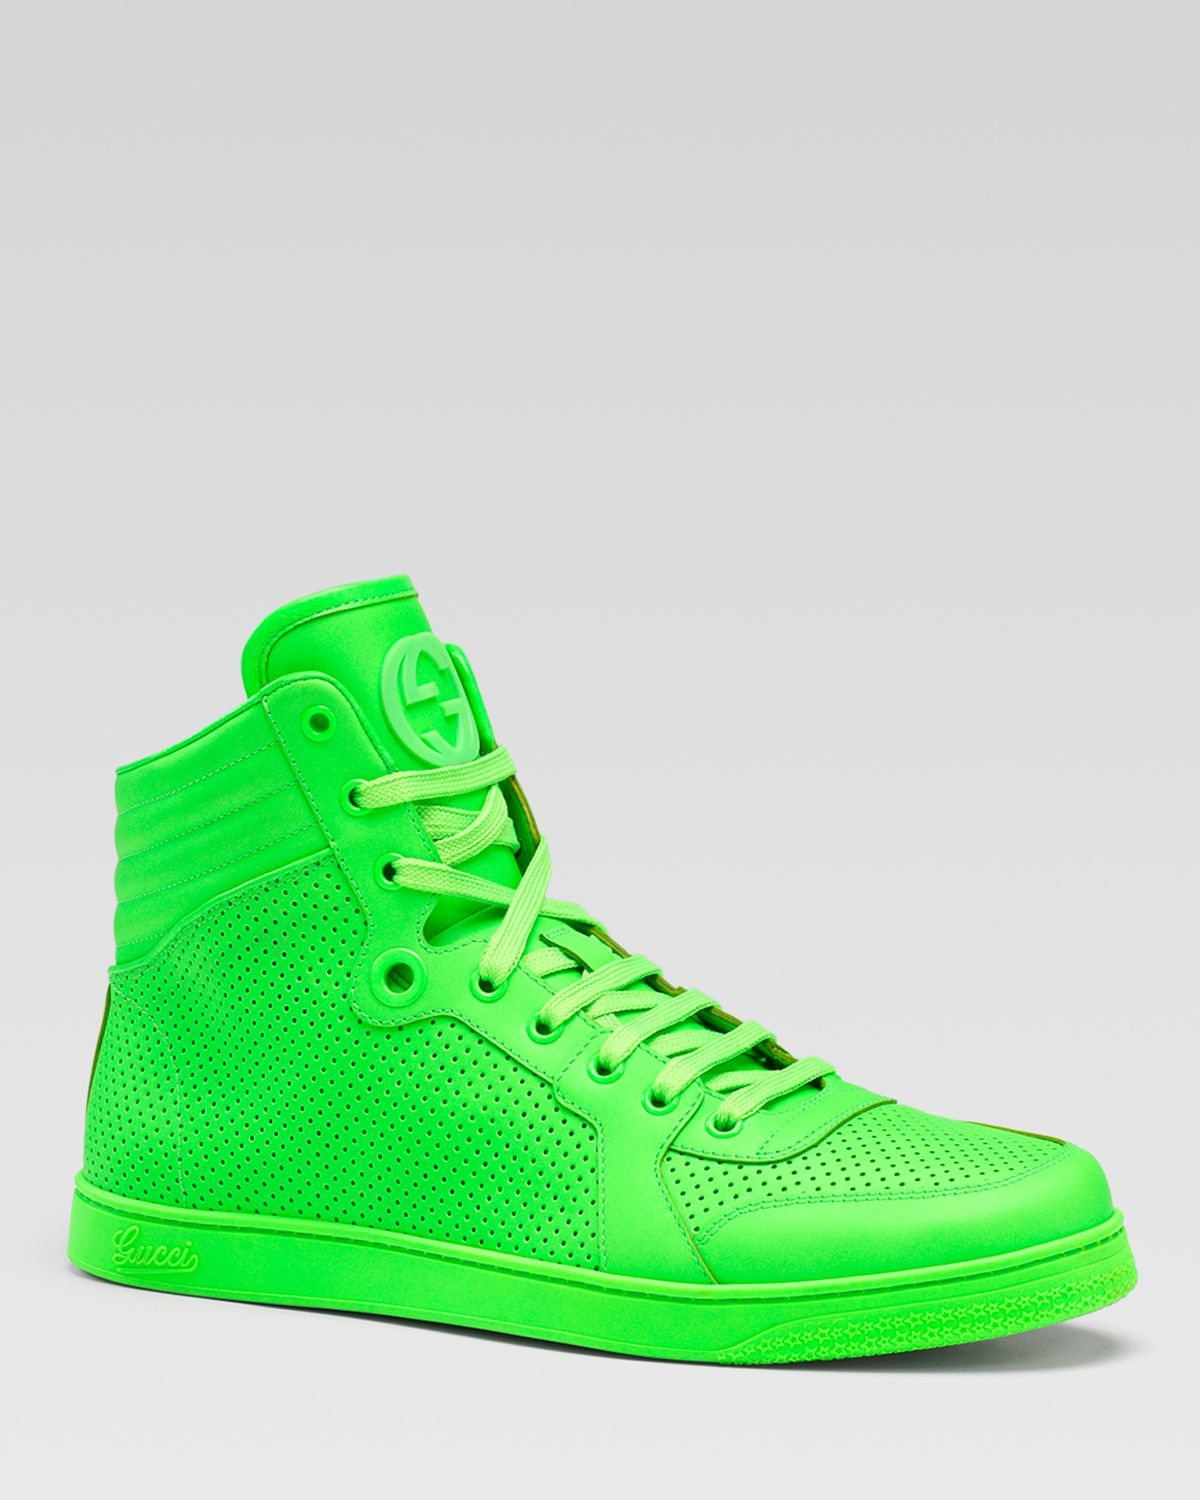 gucci coda neon leather hightop sneakers in green for men neon green lyst. Black Bedroom Furniture Sets. Home Design Ideas